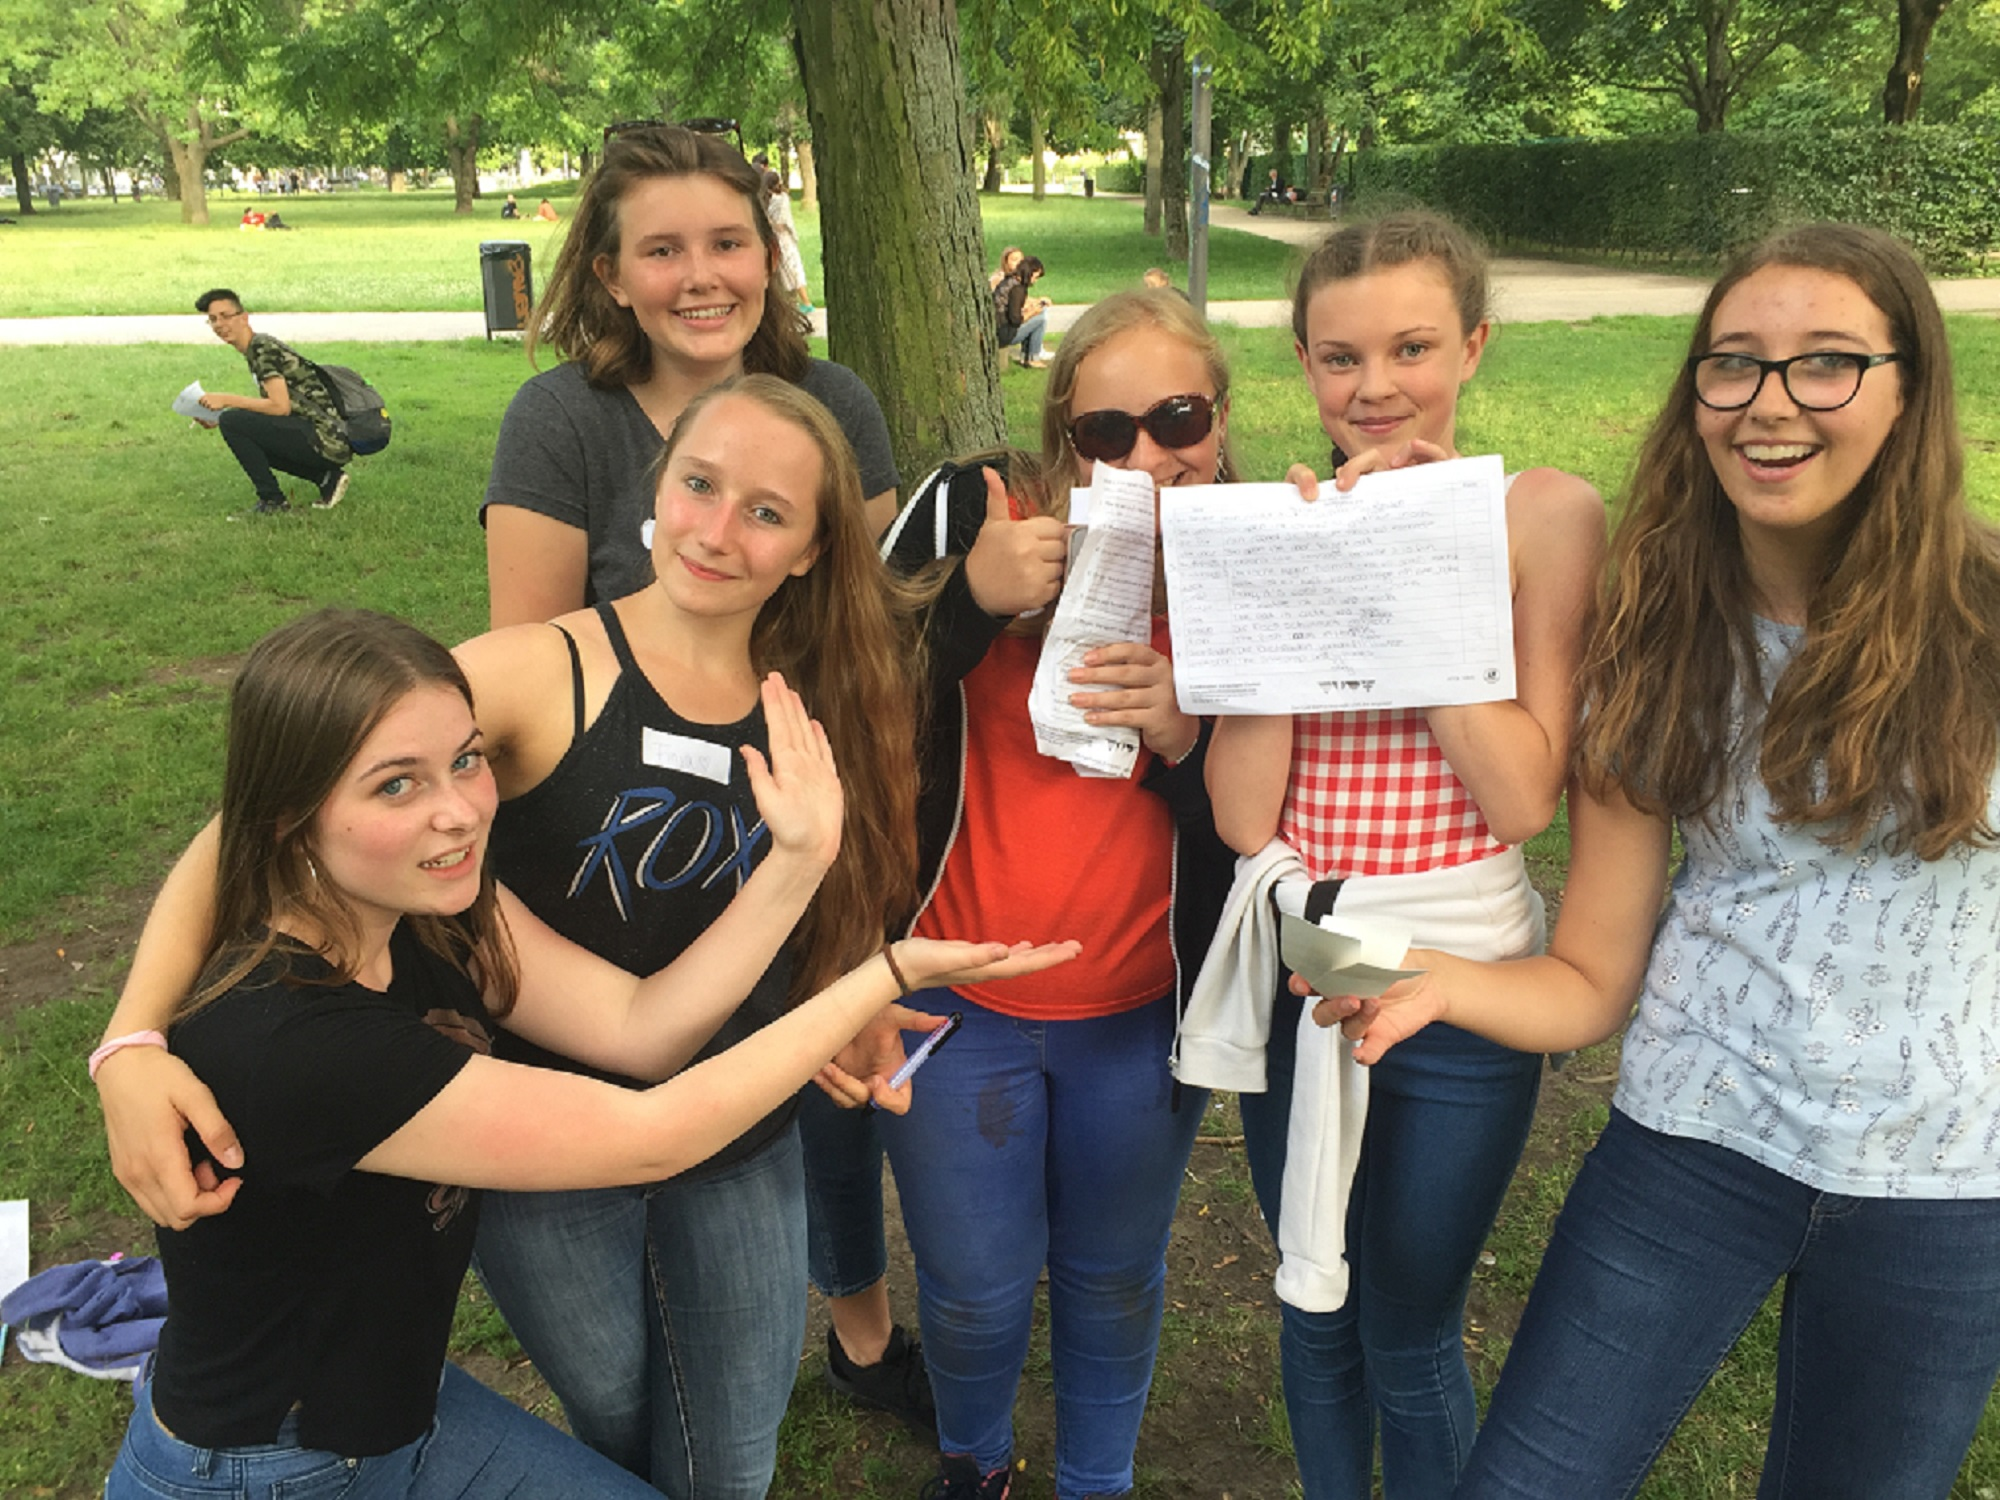 Davison CE High School for Girls to Berlin, 10th – 14th July 2017